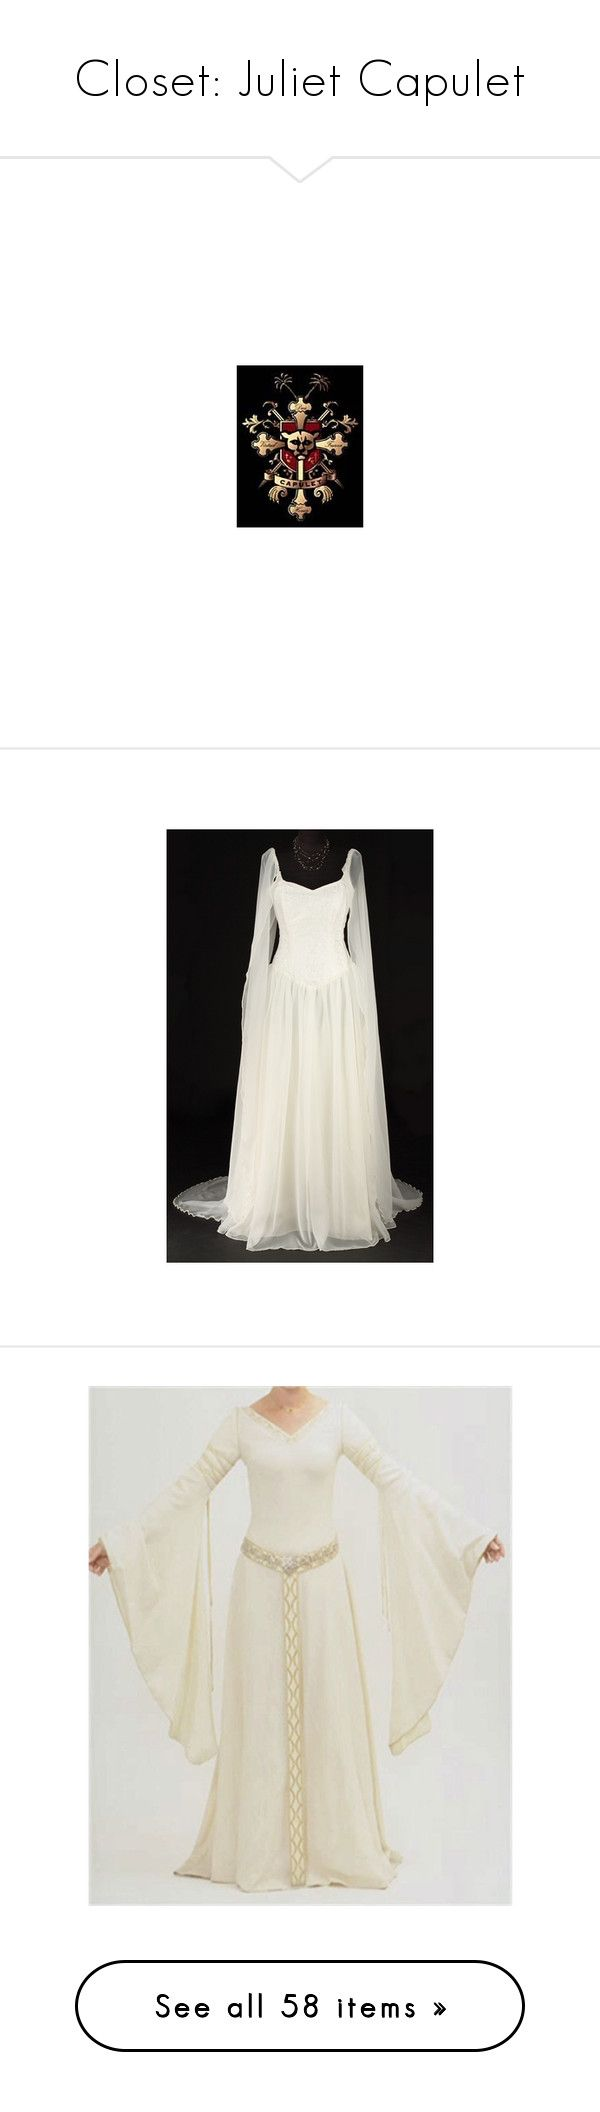 """Closet: Juliet Capulet"" by enchantedrose33 ❤ liked on Polyvore featuring capulet, dresses, medieval, wedding dresses, costumes, wedding, lord of the rings, gowns, vestidos and long dresses"